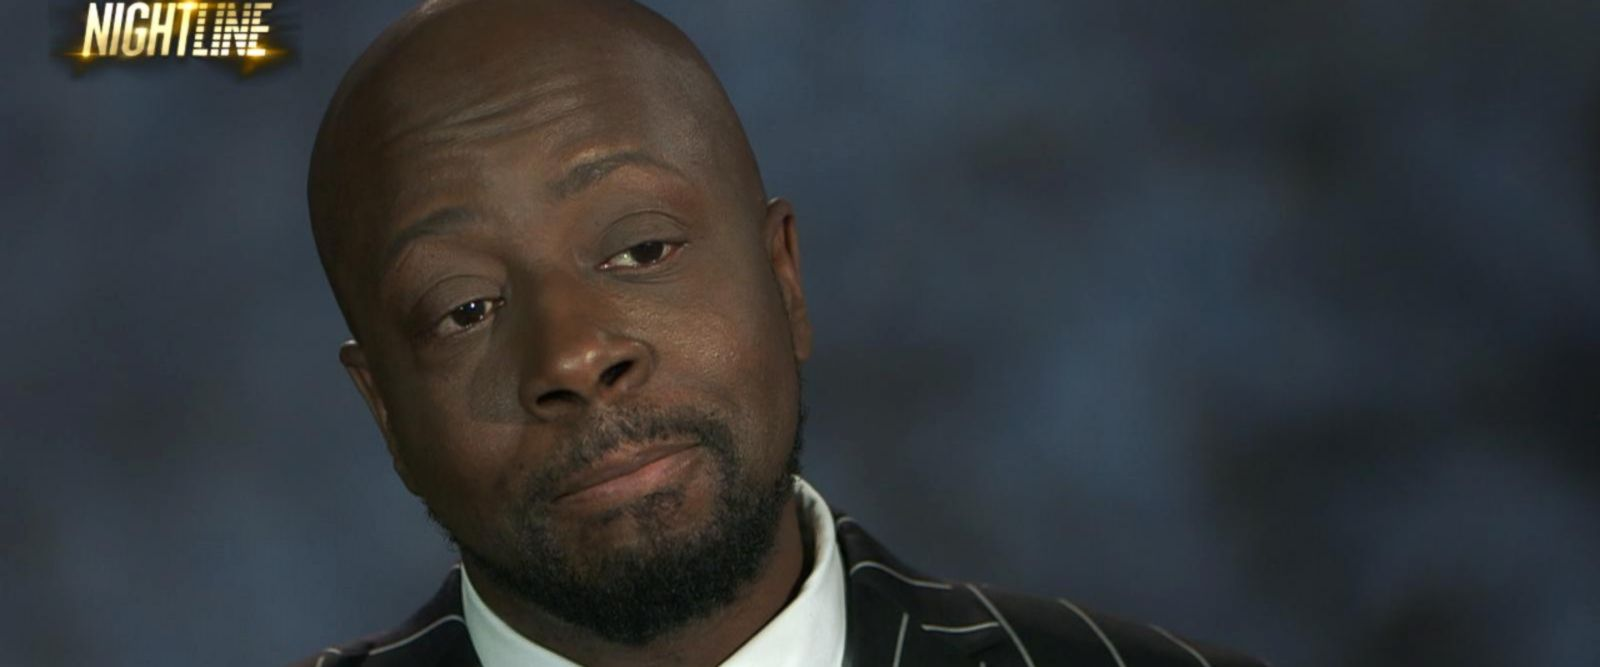 VIDEO: Wyclef Jean says he thought he was being 'Punk'd' when LA Sheriff pulled him over